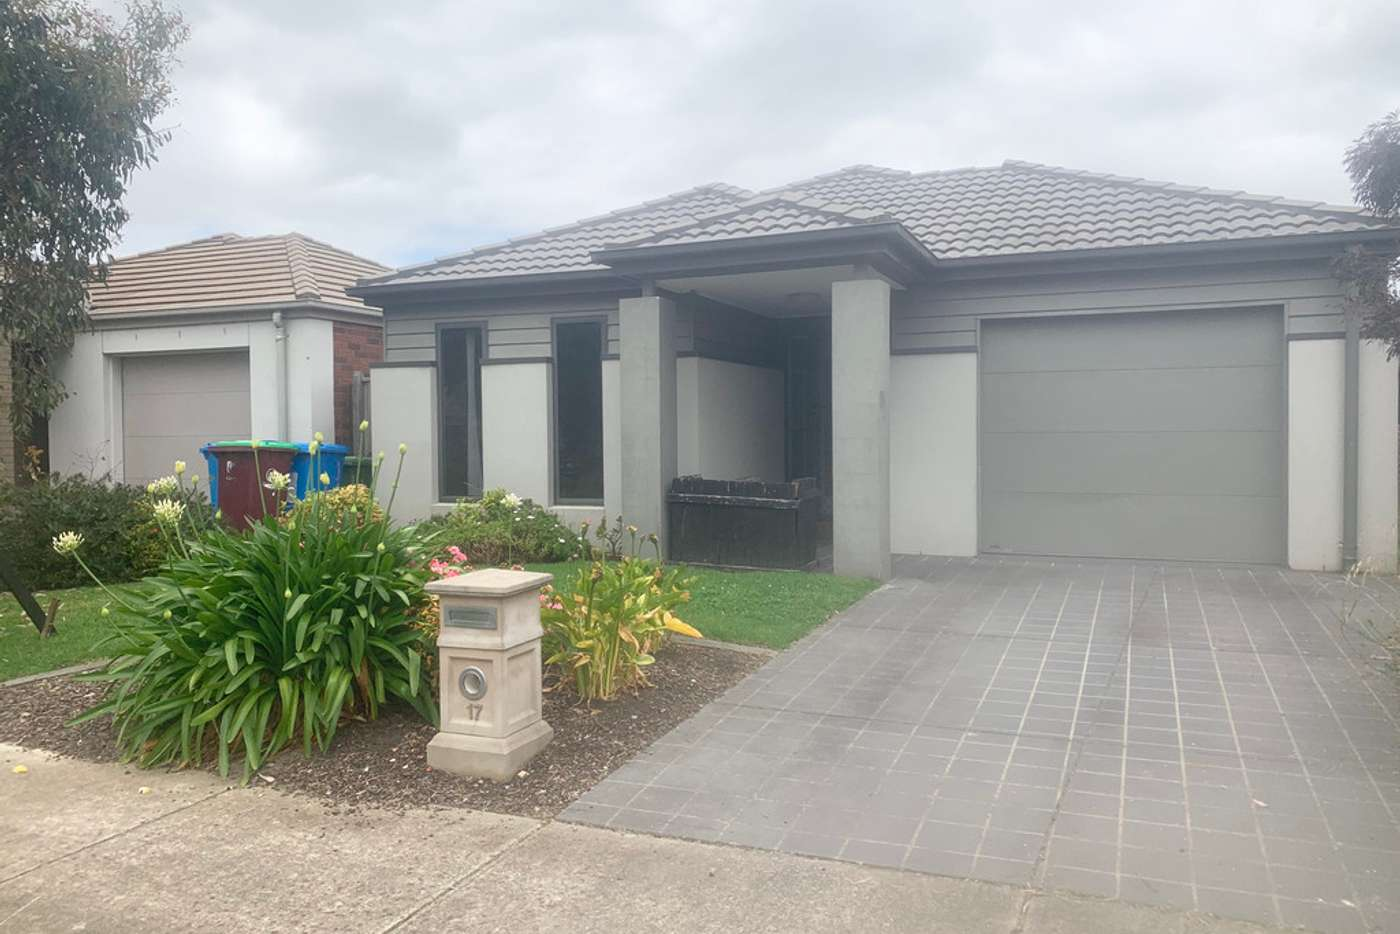 Main view of Homely house listing, 17 Westbury Way, Lyndhurst VIC 3975